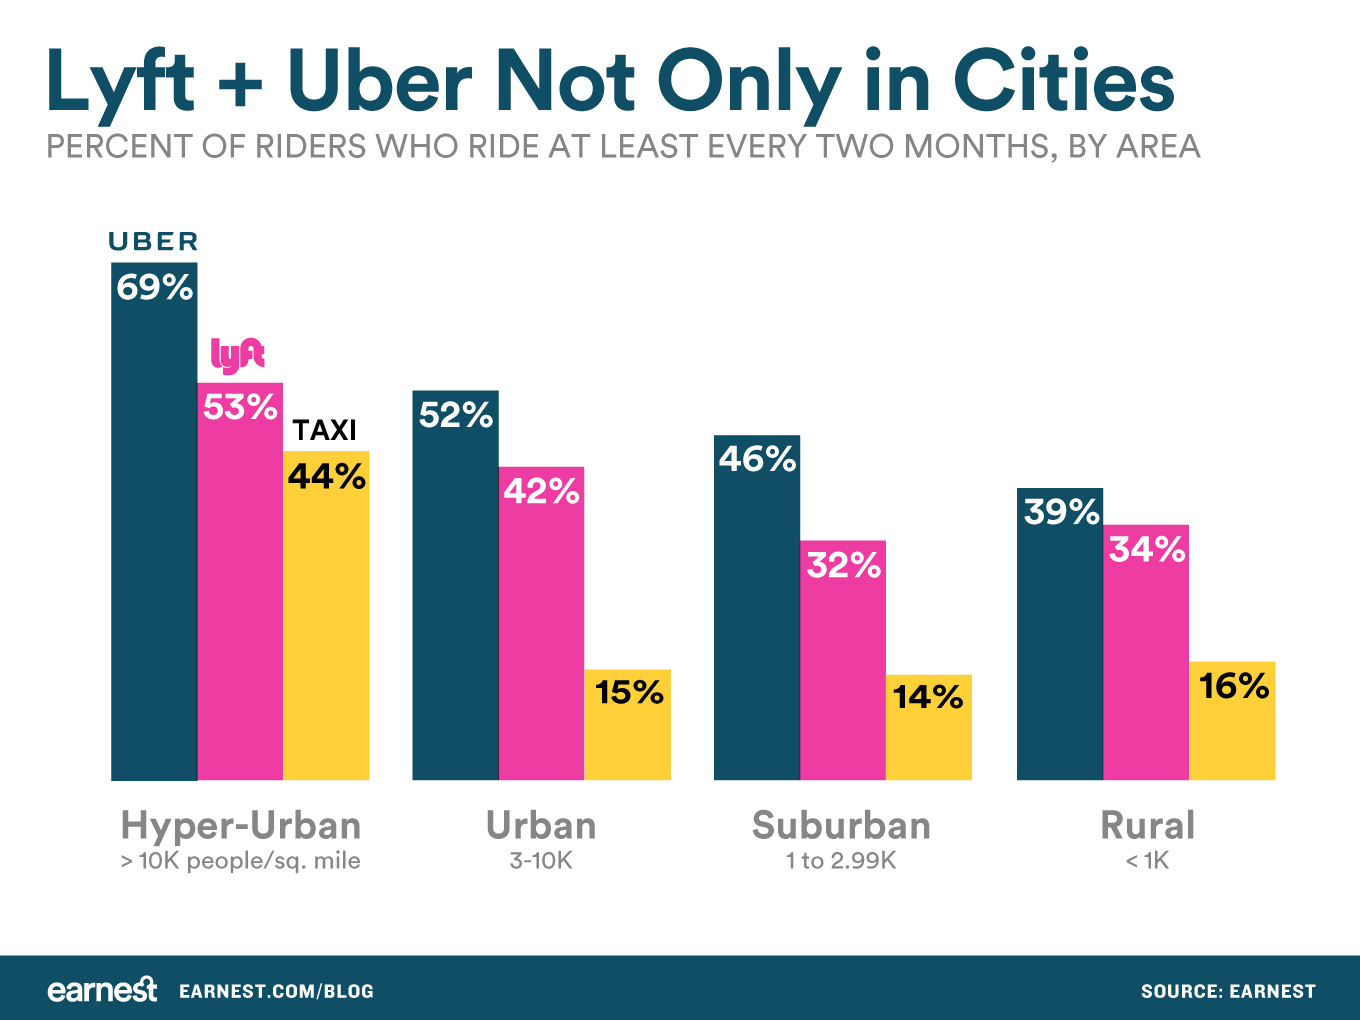 Lyft-Uber-not-only-in-cities